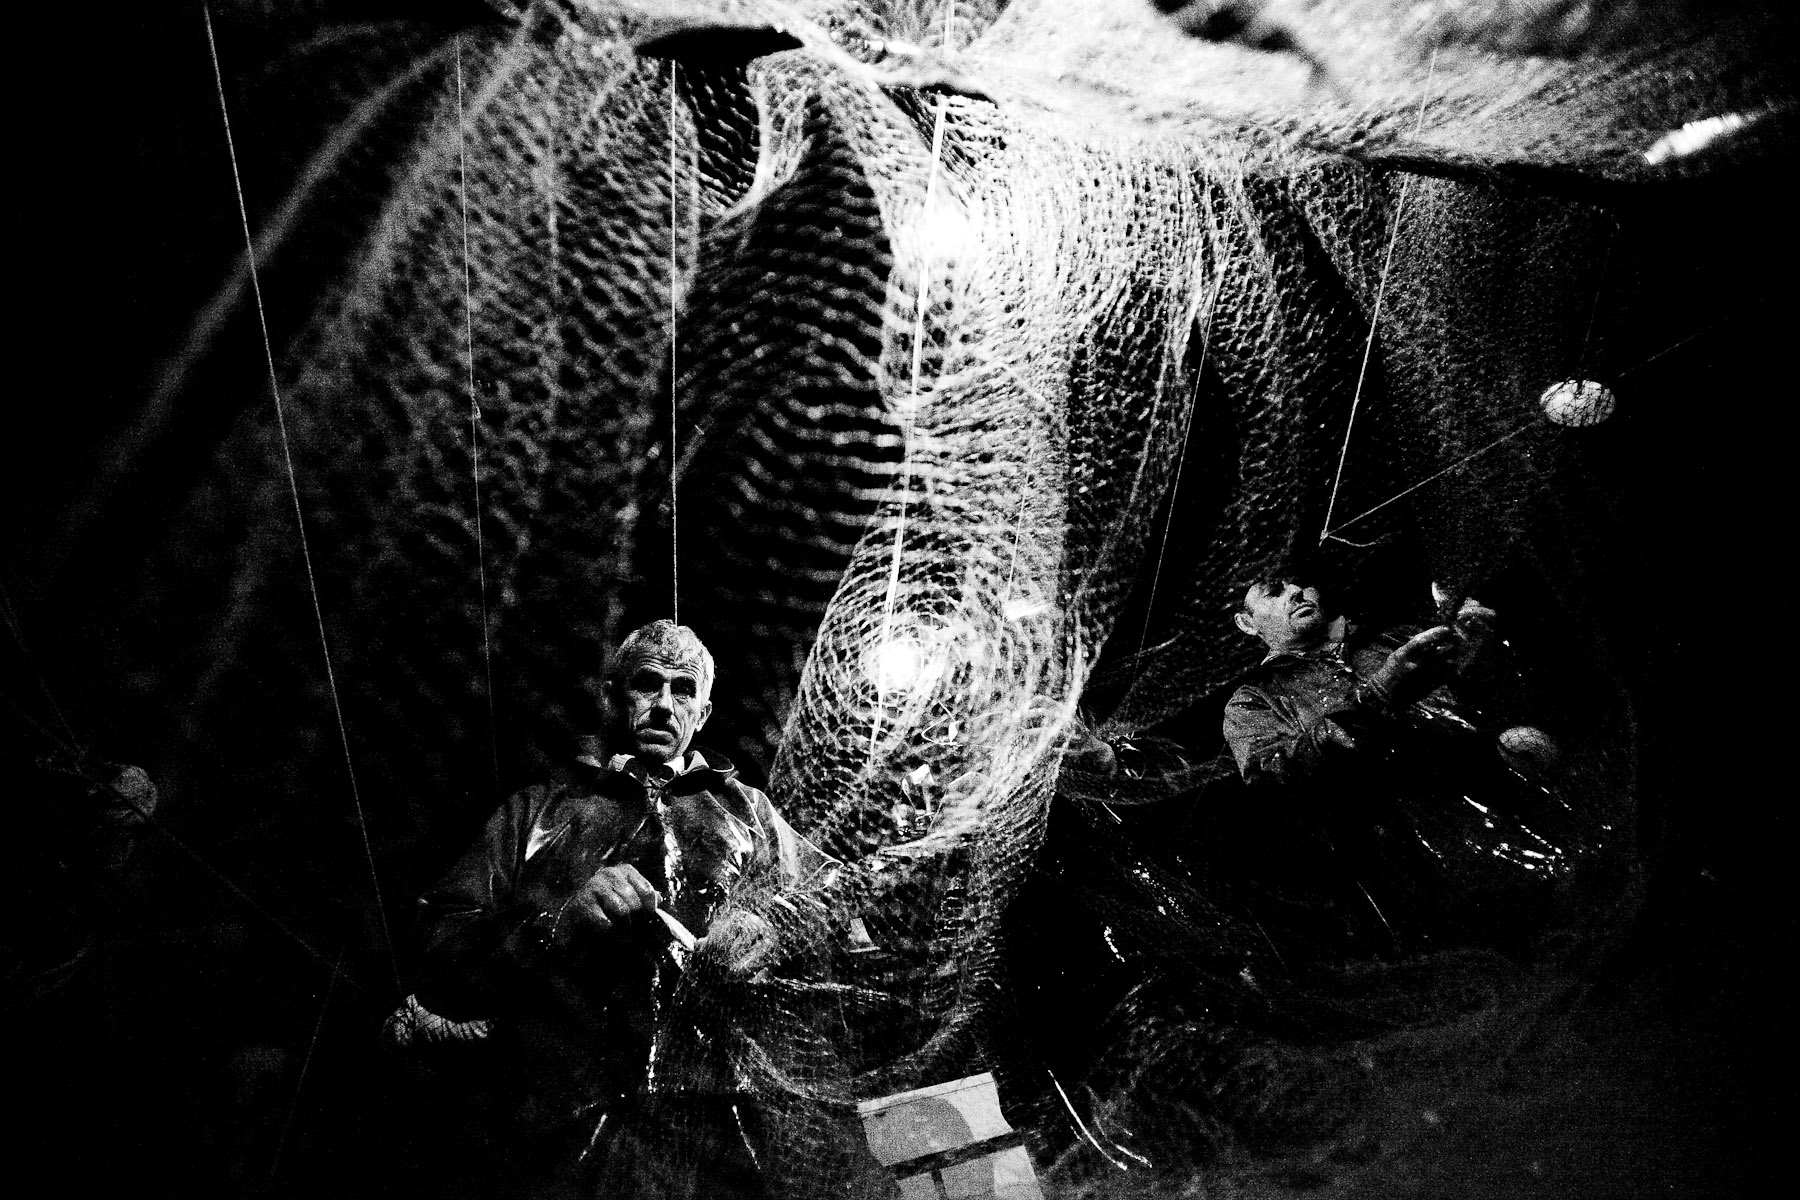 Adem, Cevat and Cinar pull the net from the Marmara sea off the coast of Istanbul on 22nd June 2010. They fish all throughout the night, because the air and sea are cooler and the fish are more likely to be in low depths.